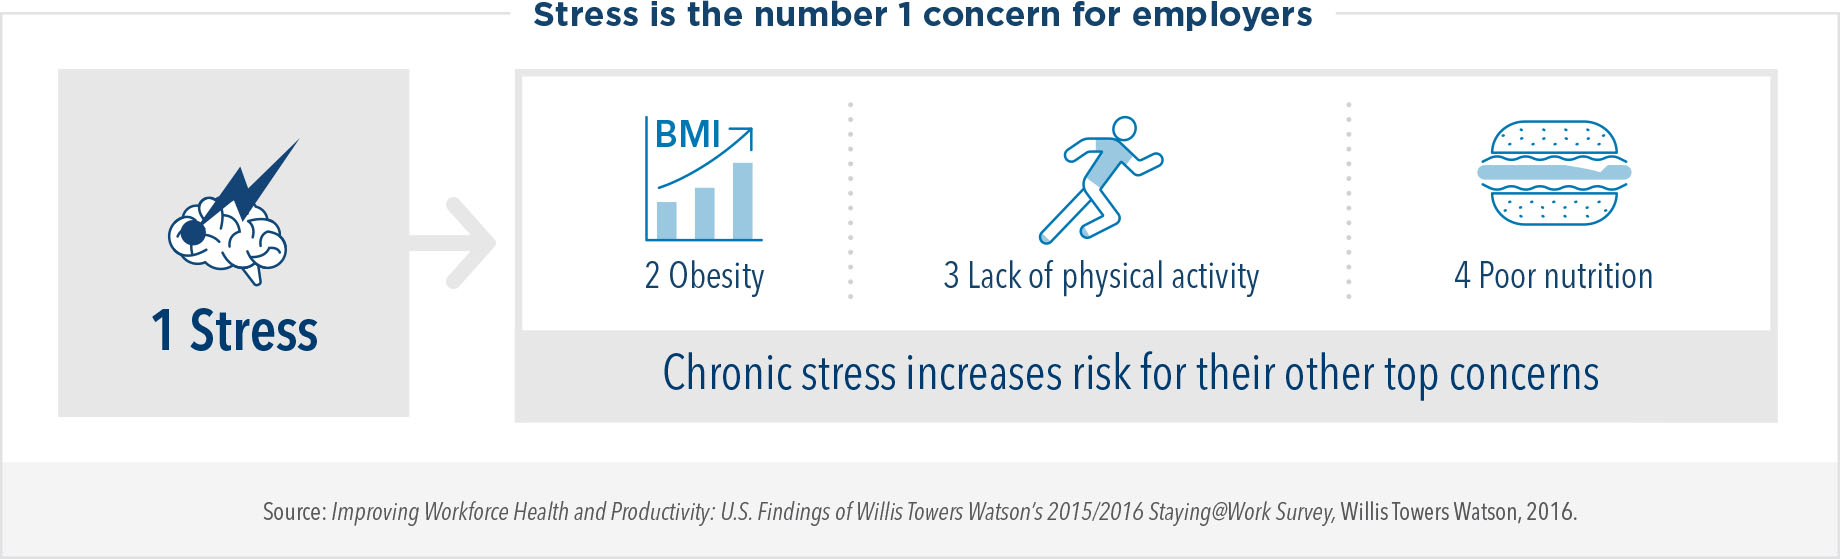 Stress is the number 1 concern for employers. Chronic stress increases risk for obesity, lack of physical activity, and poor nutrition, which are other top concerns of employers.